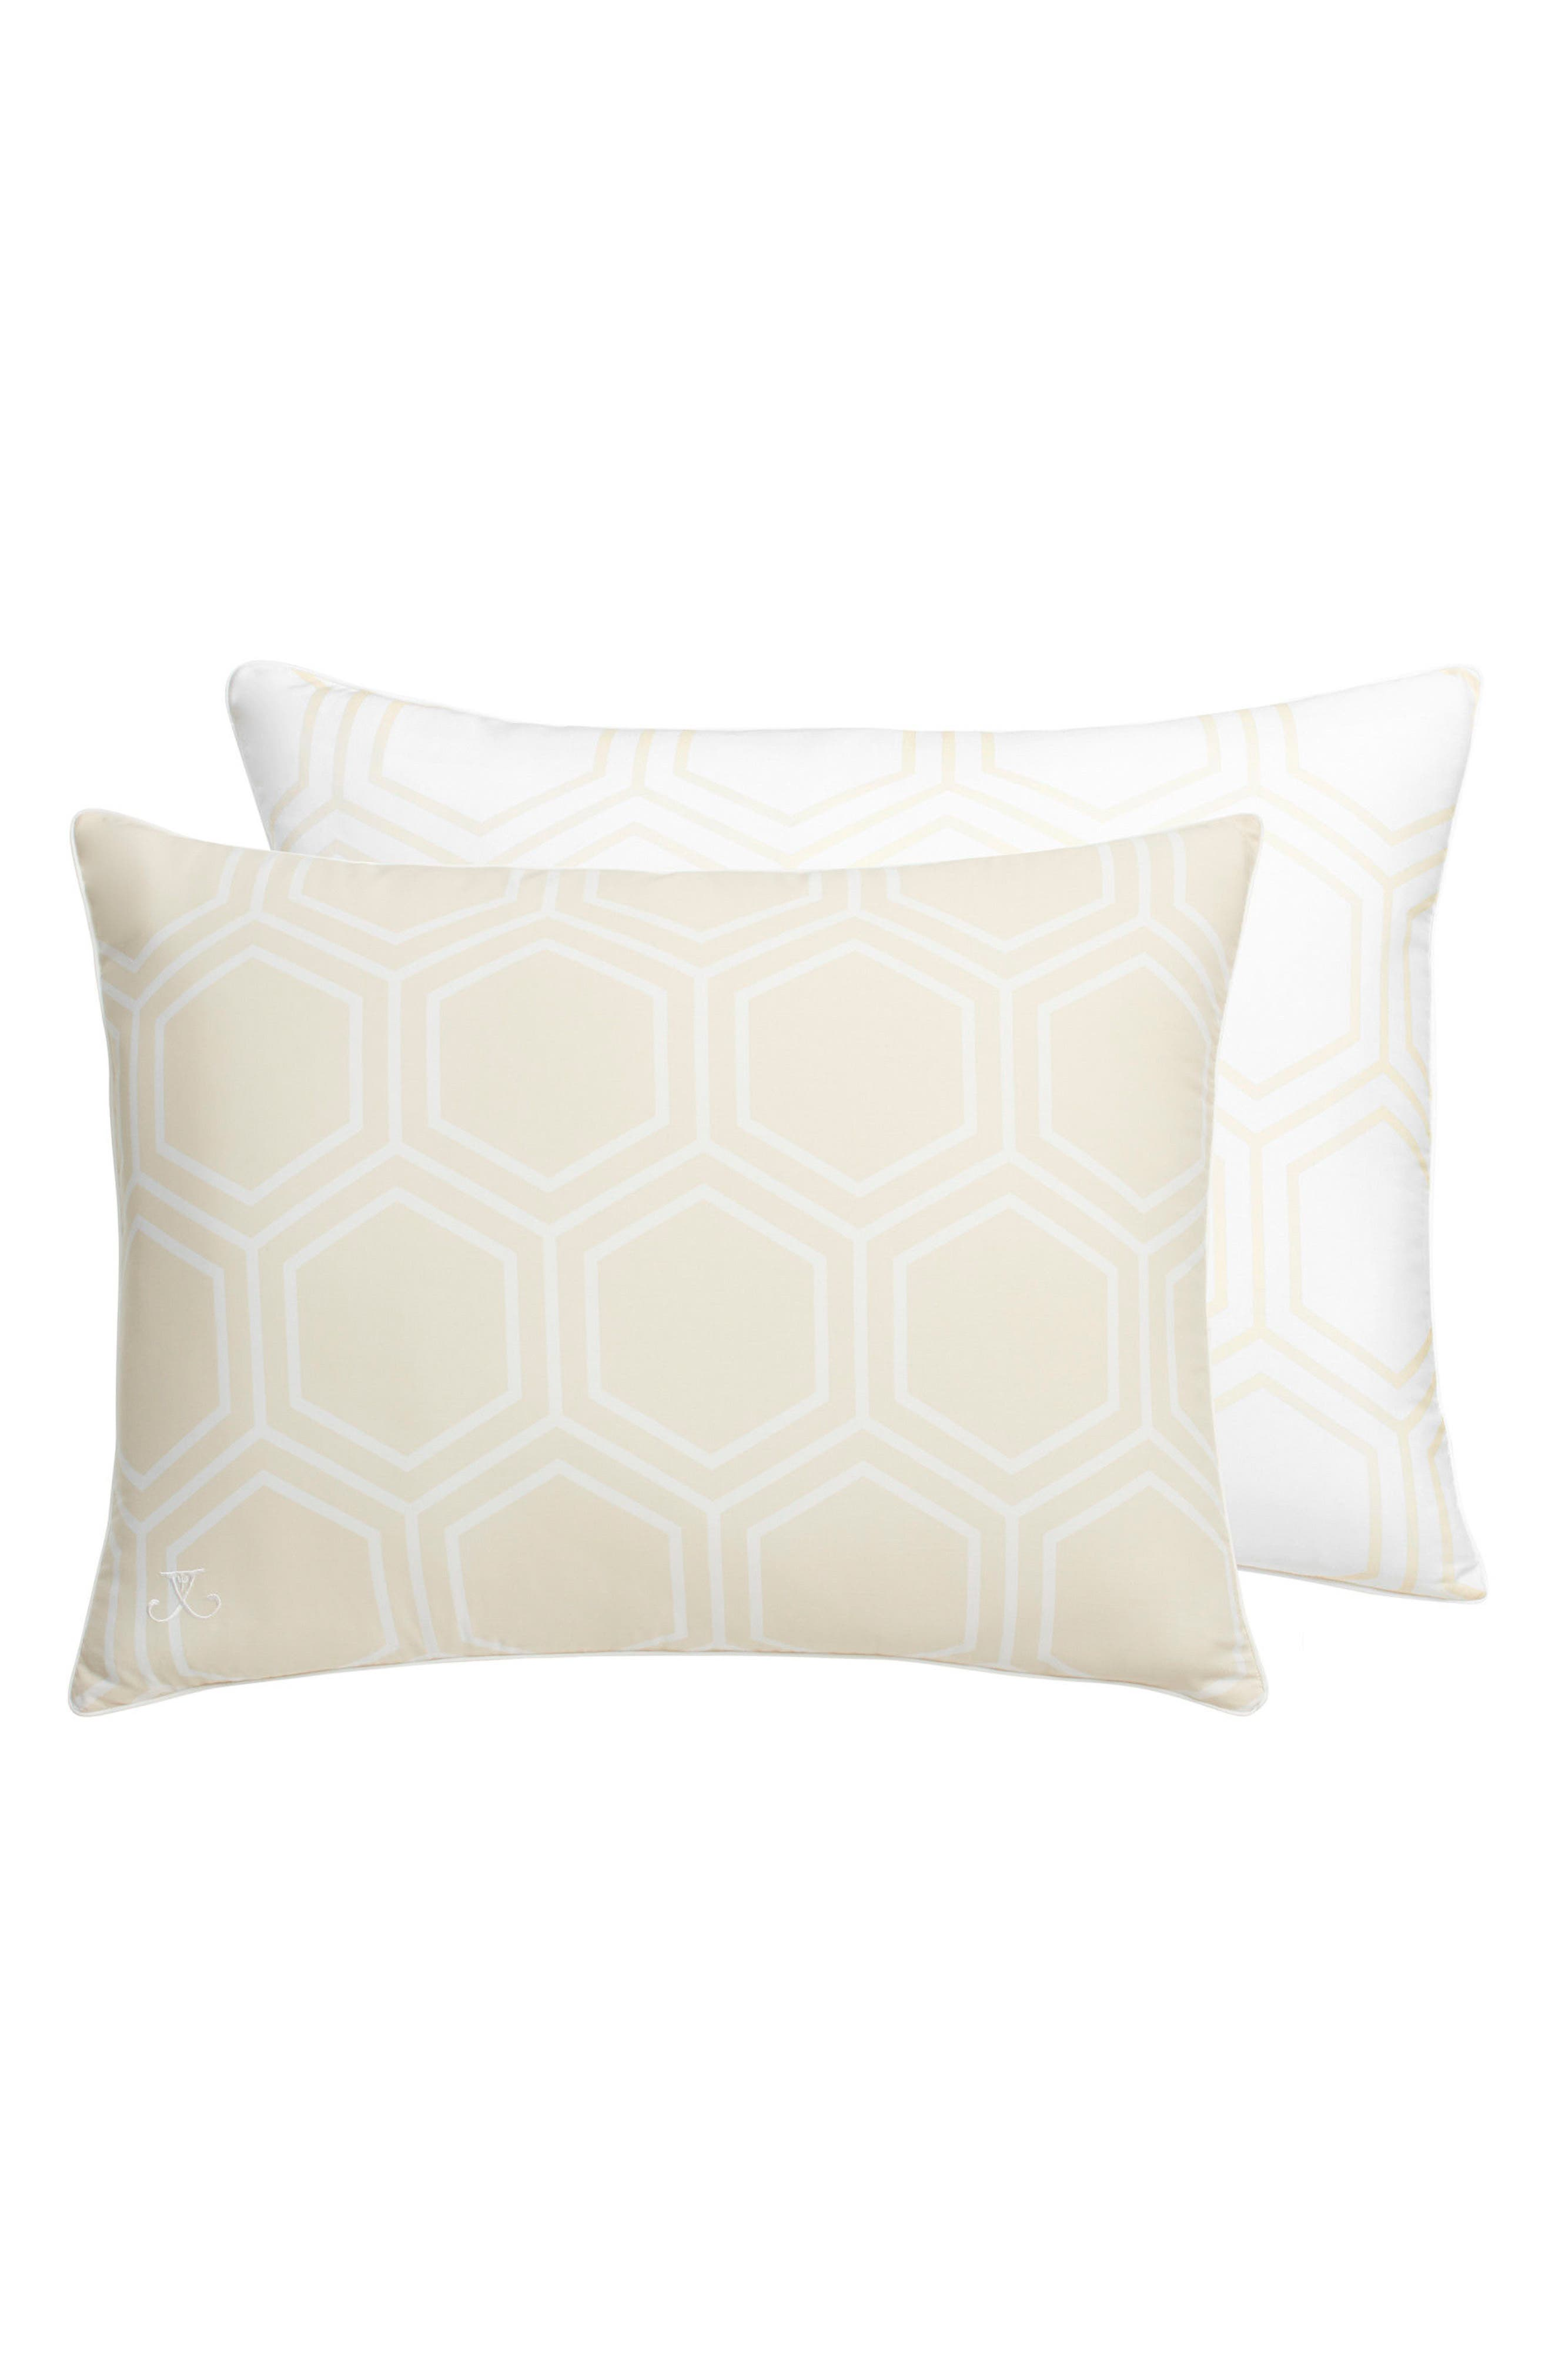 Alternate Image 1 Selected - Jill Rosenwald Blackpoint Hex Standard Sham